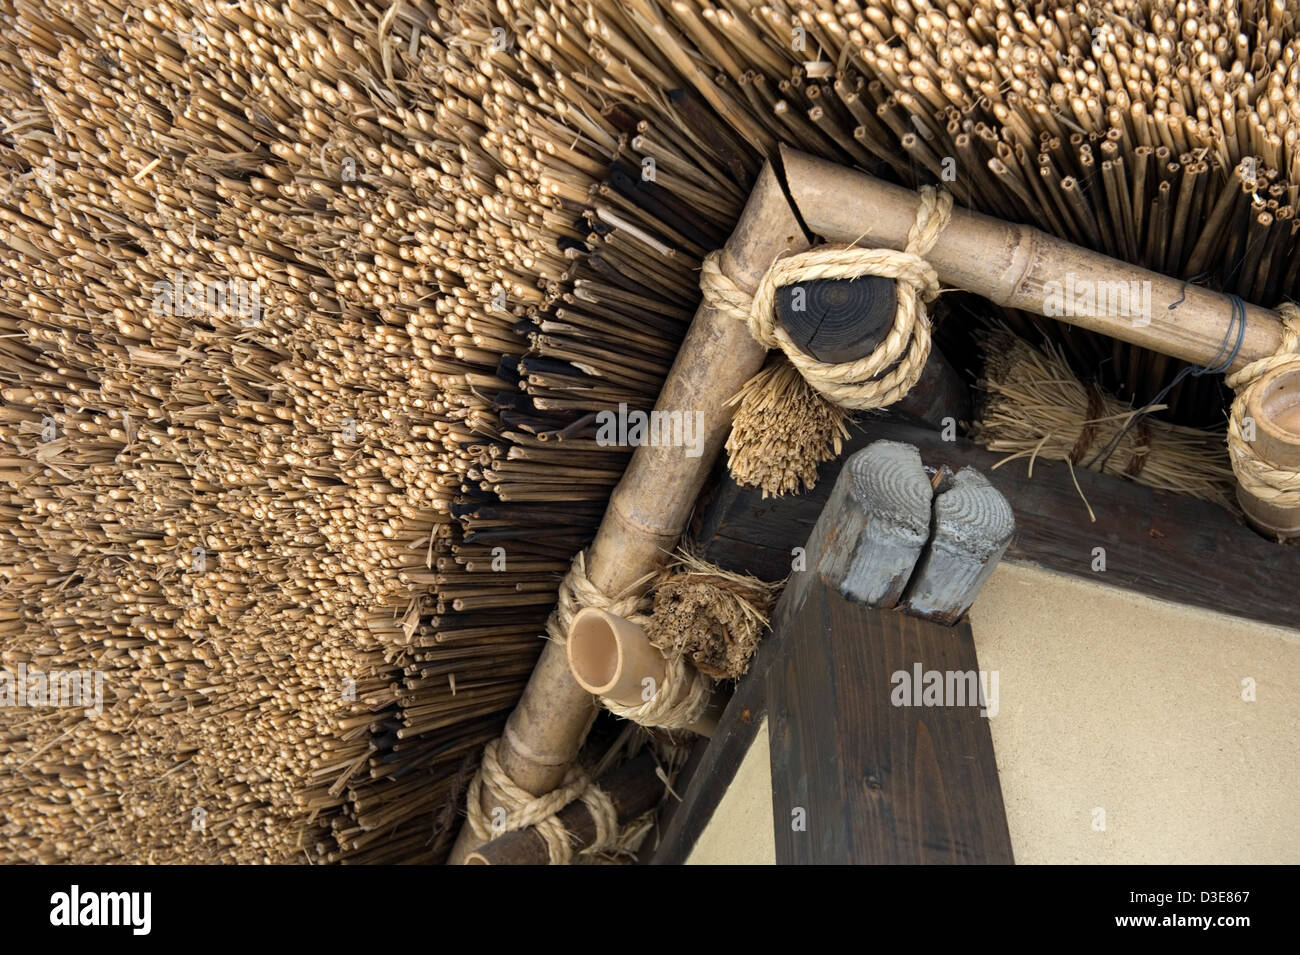 architectural detail photography. close-up architectural detail of traditional japanese warabuki or kayabuki natural thatched roof construction with rope lashing photography